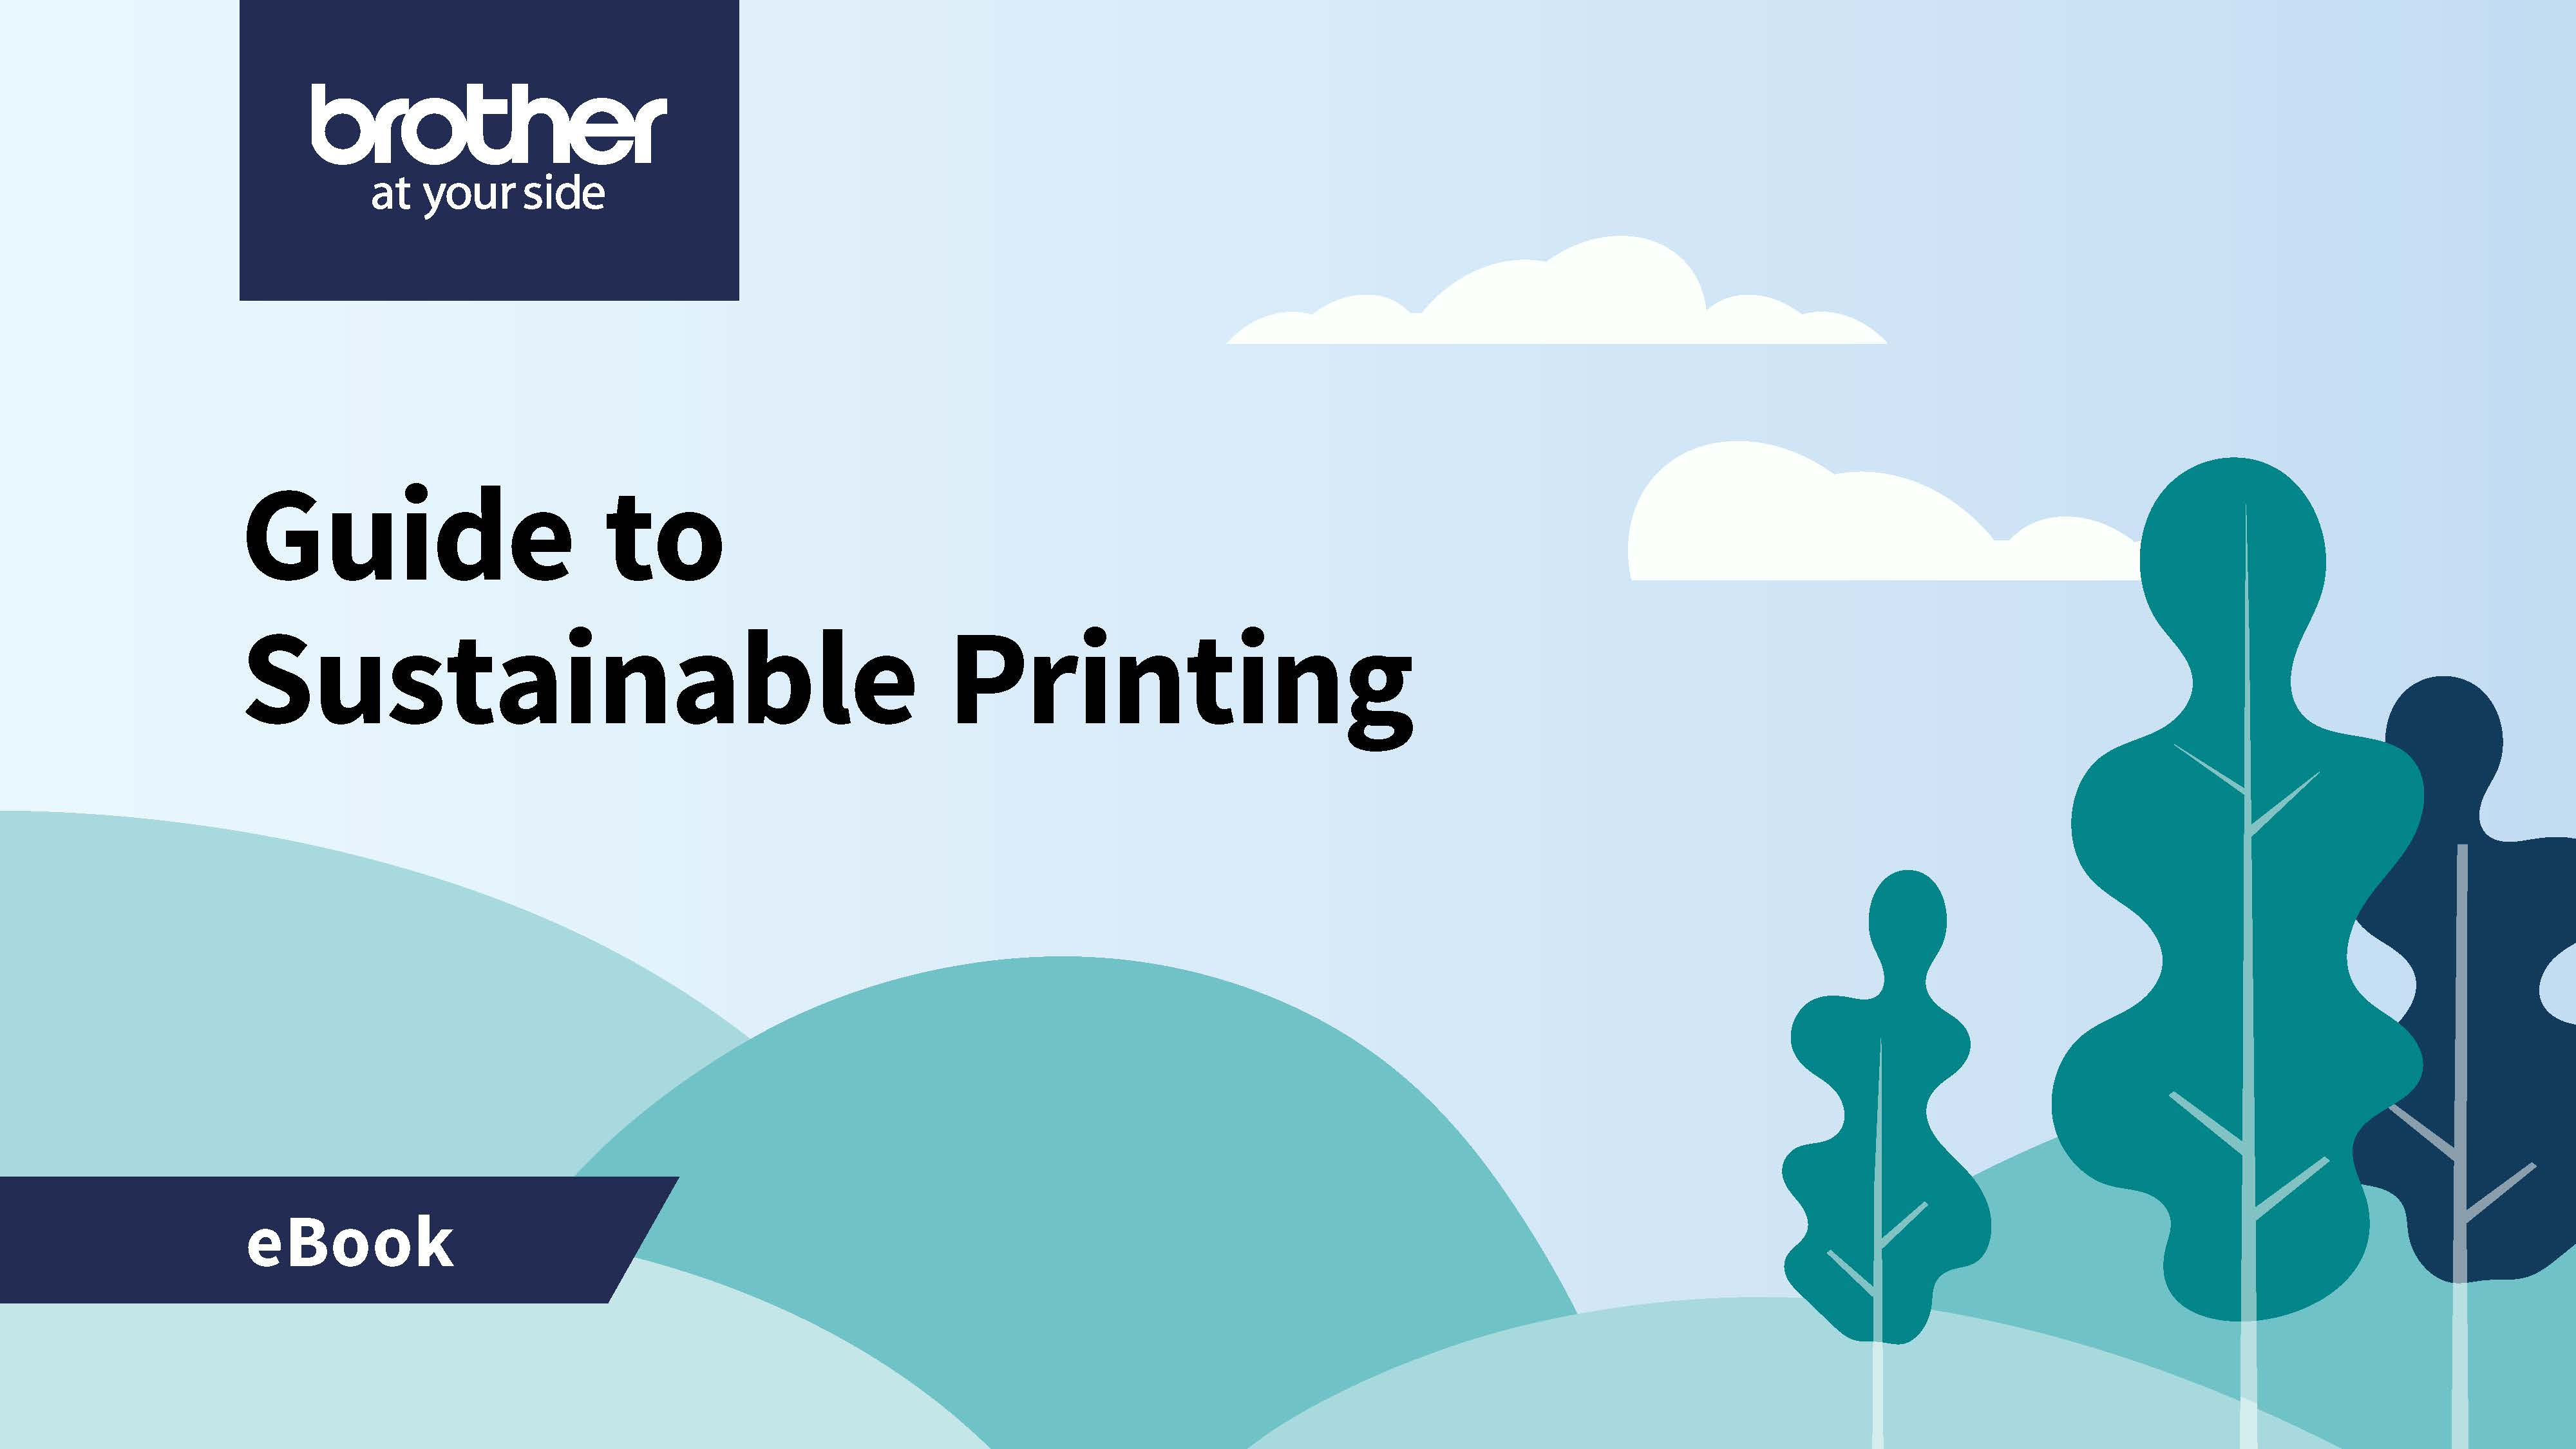 Guide to Sustainable Printing